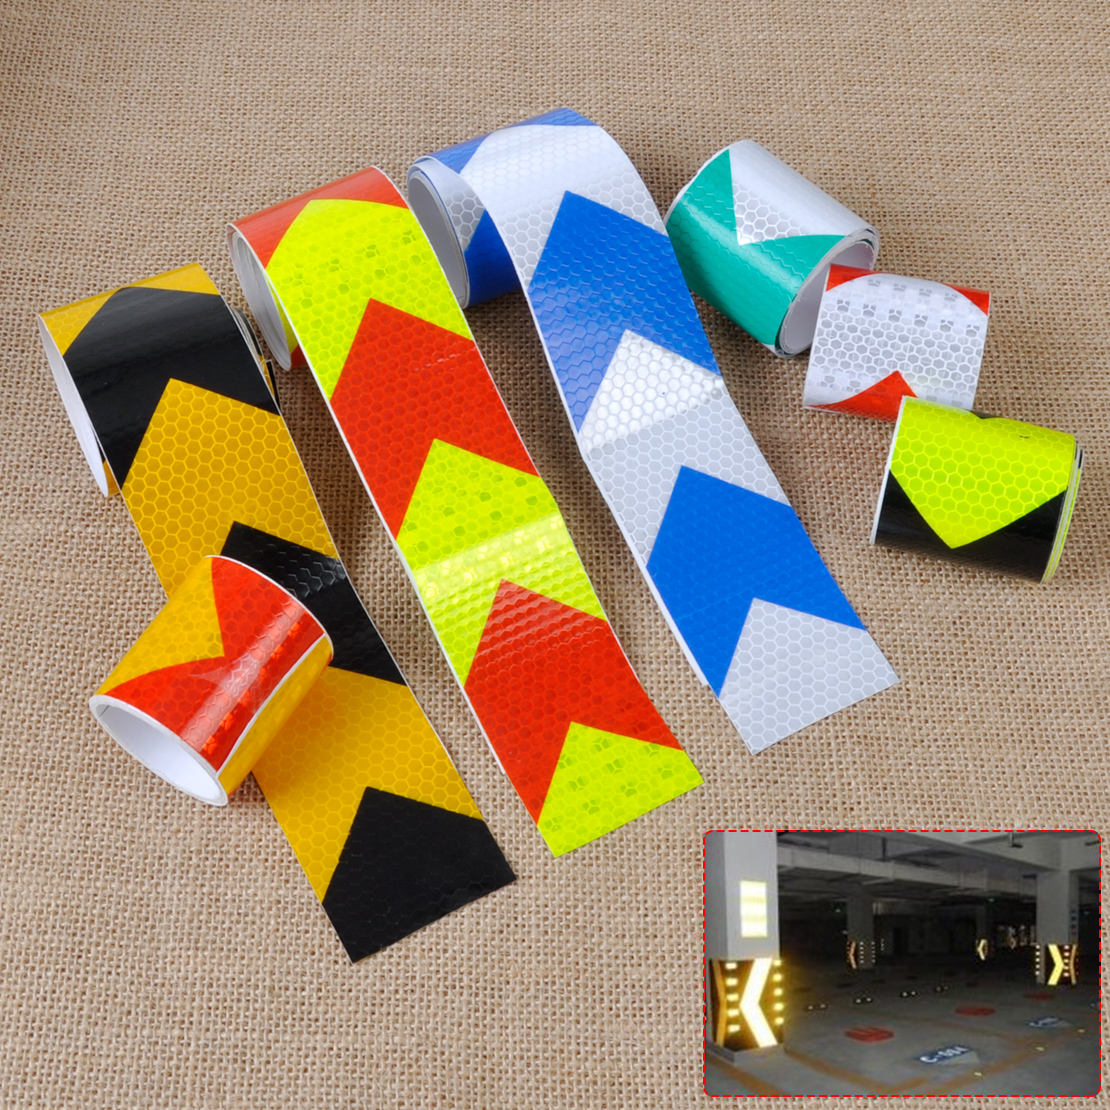 CITALL 5x300cm Arrow Safety Warning Conspicuity Reflective Roll Tape Marking Film Sticker For Car Construction Caution Sticker